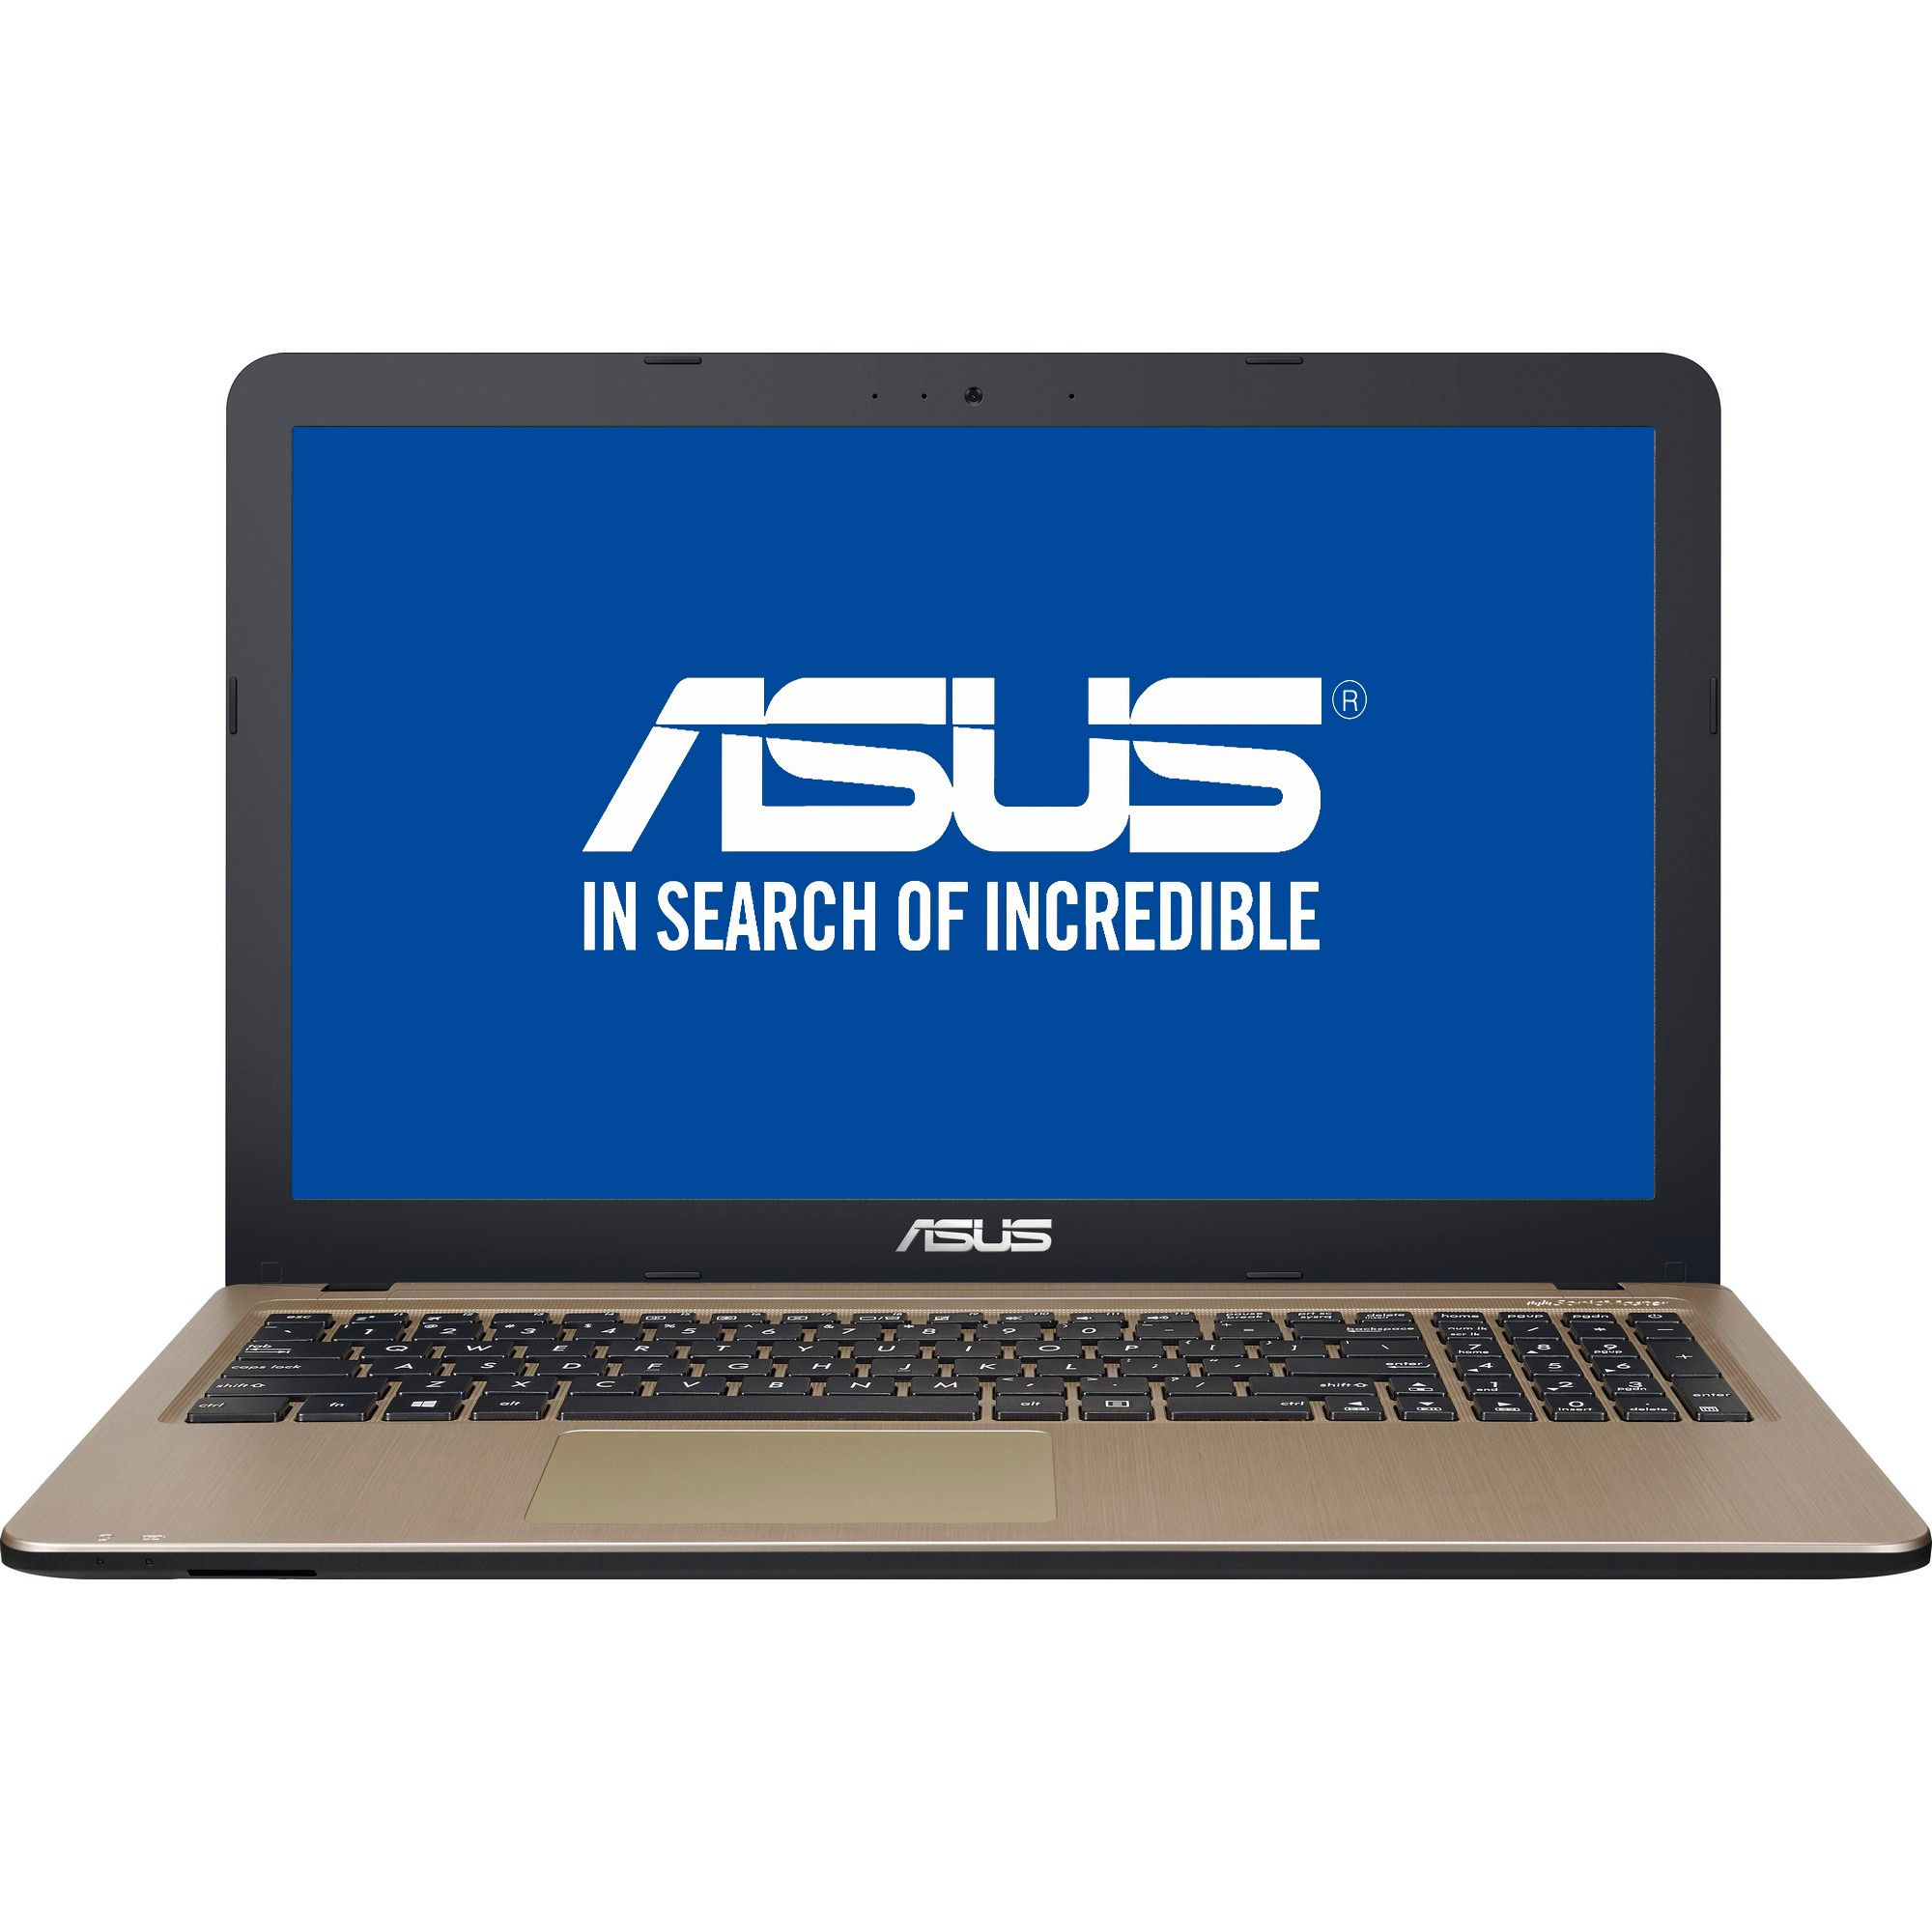 Notebook Asus VivoBook X540NA 15.6 HD Intel Celeron N3350 RAM 4GB HDD 500GB No ODD Endless OS